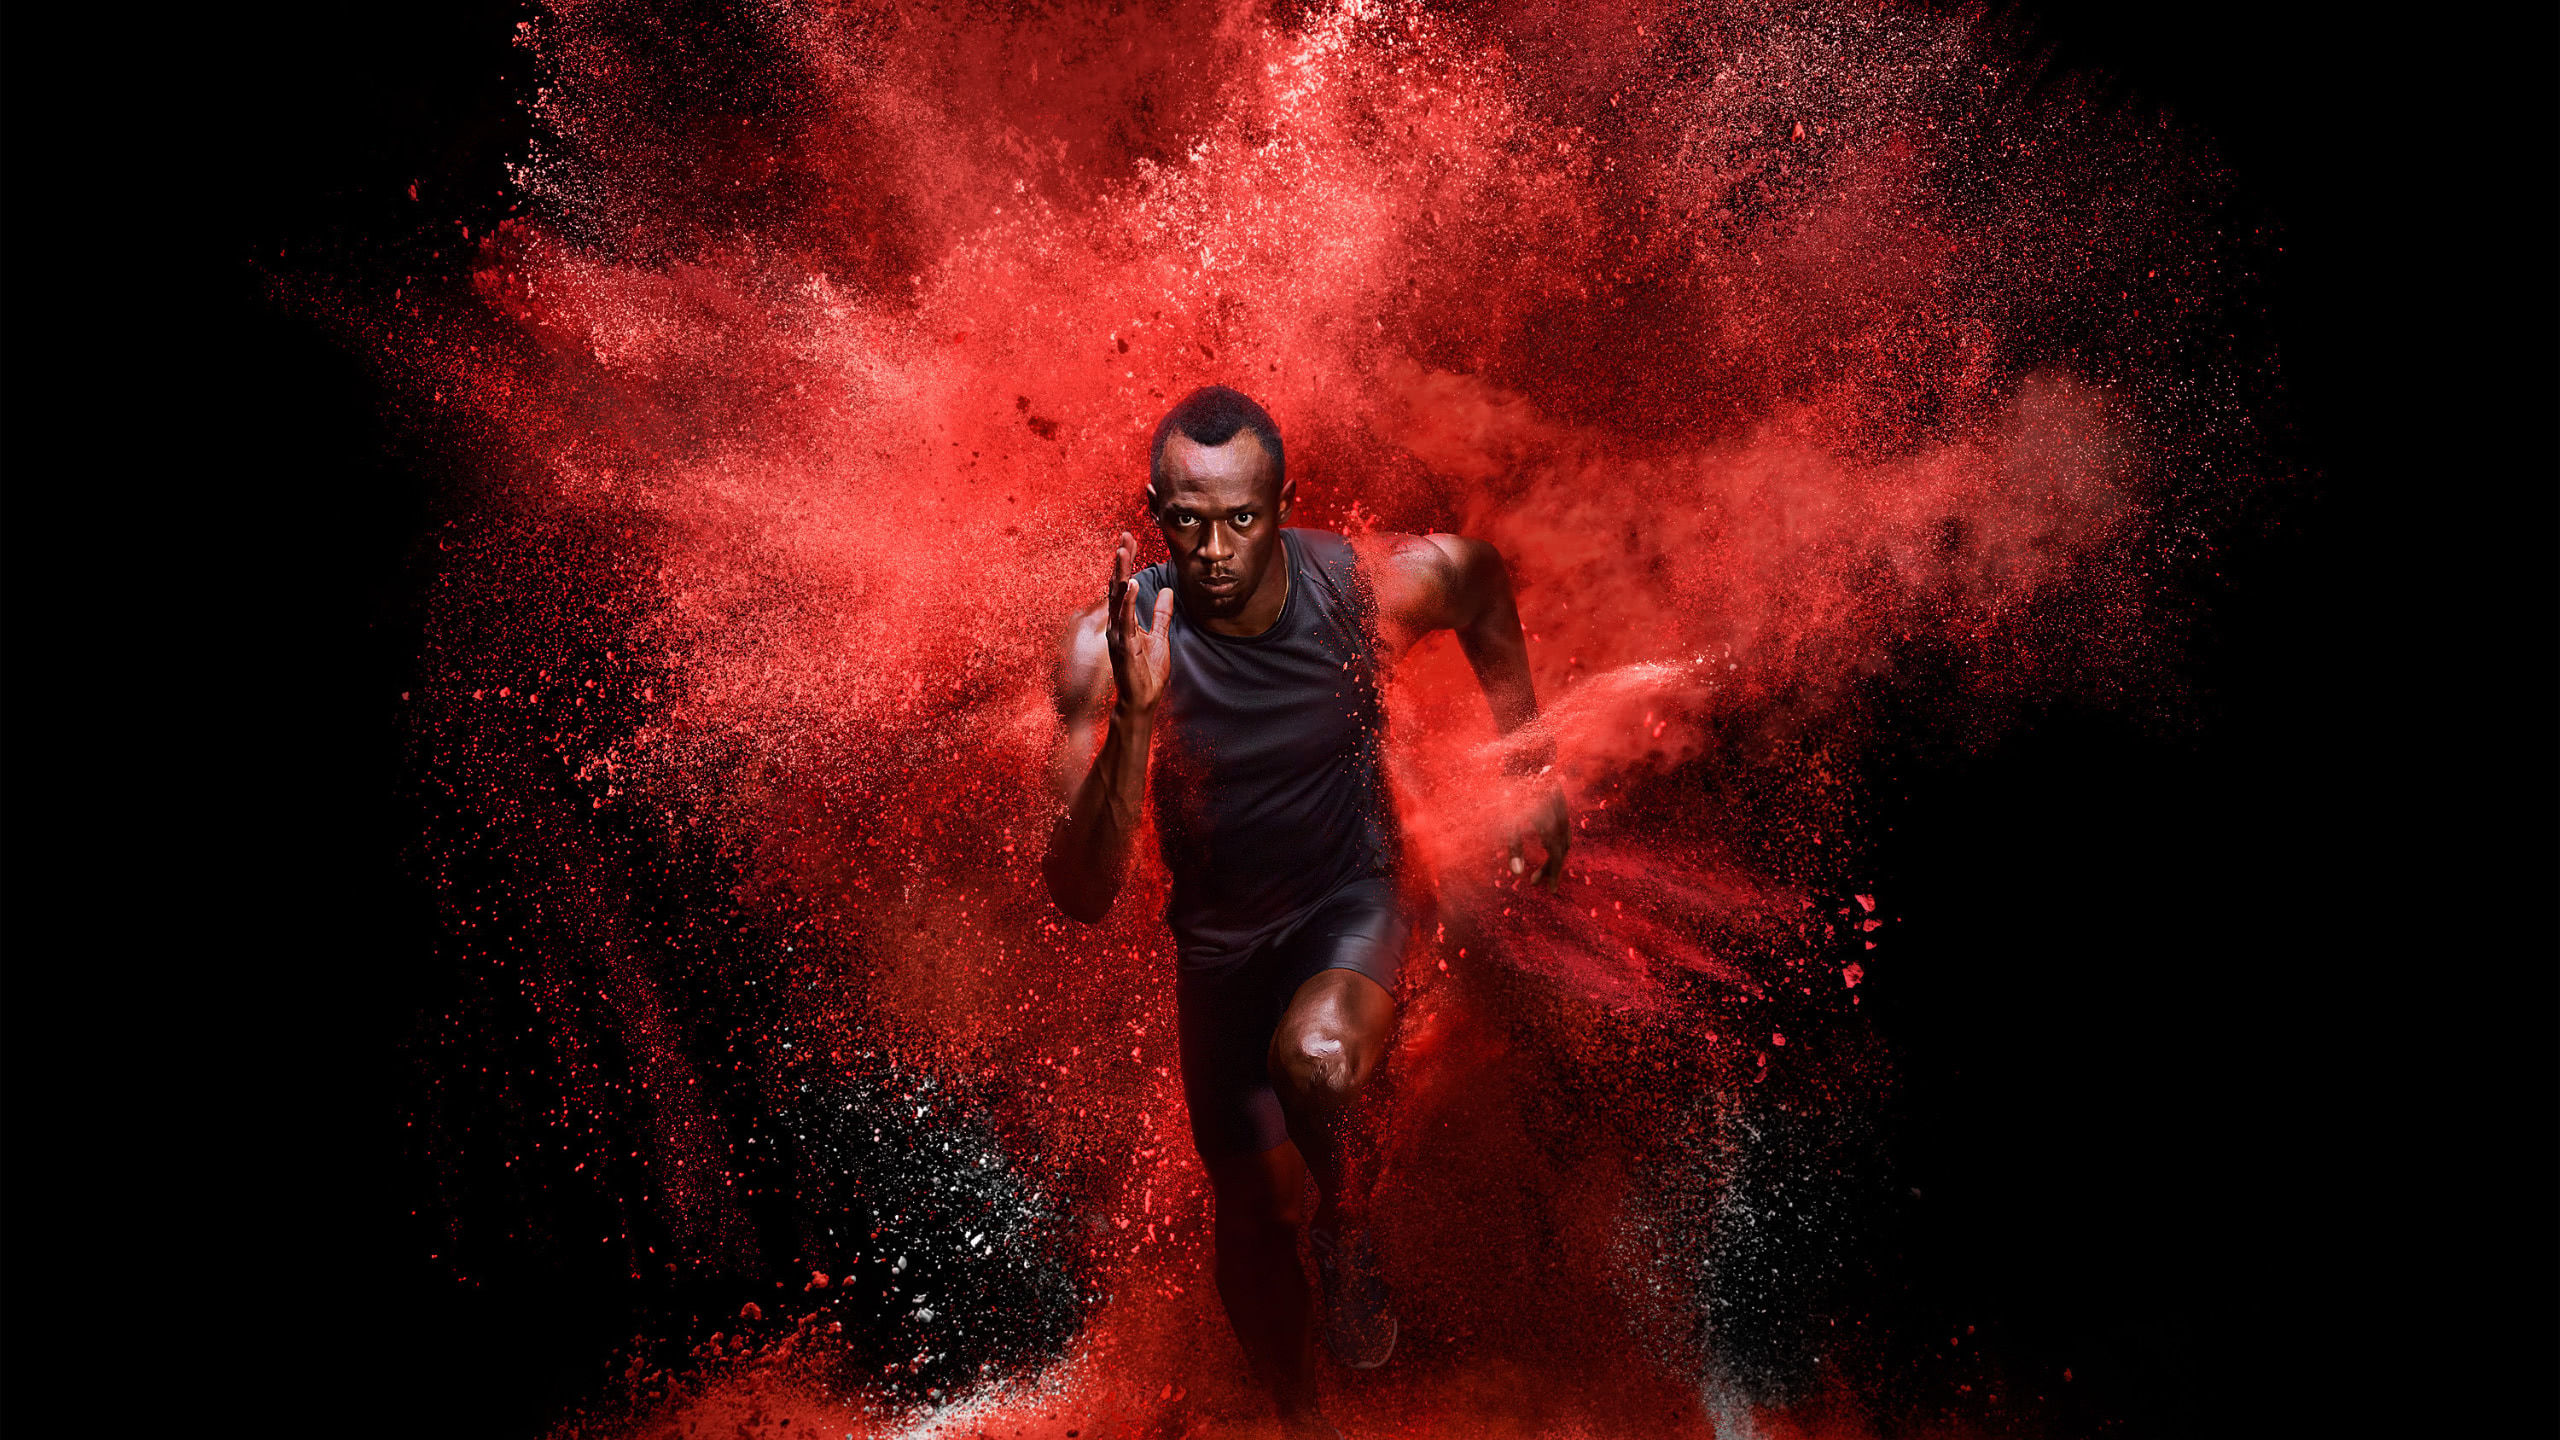 usain bolt wqhd 1440p wallpaper